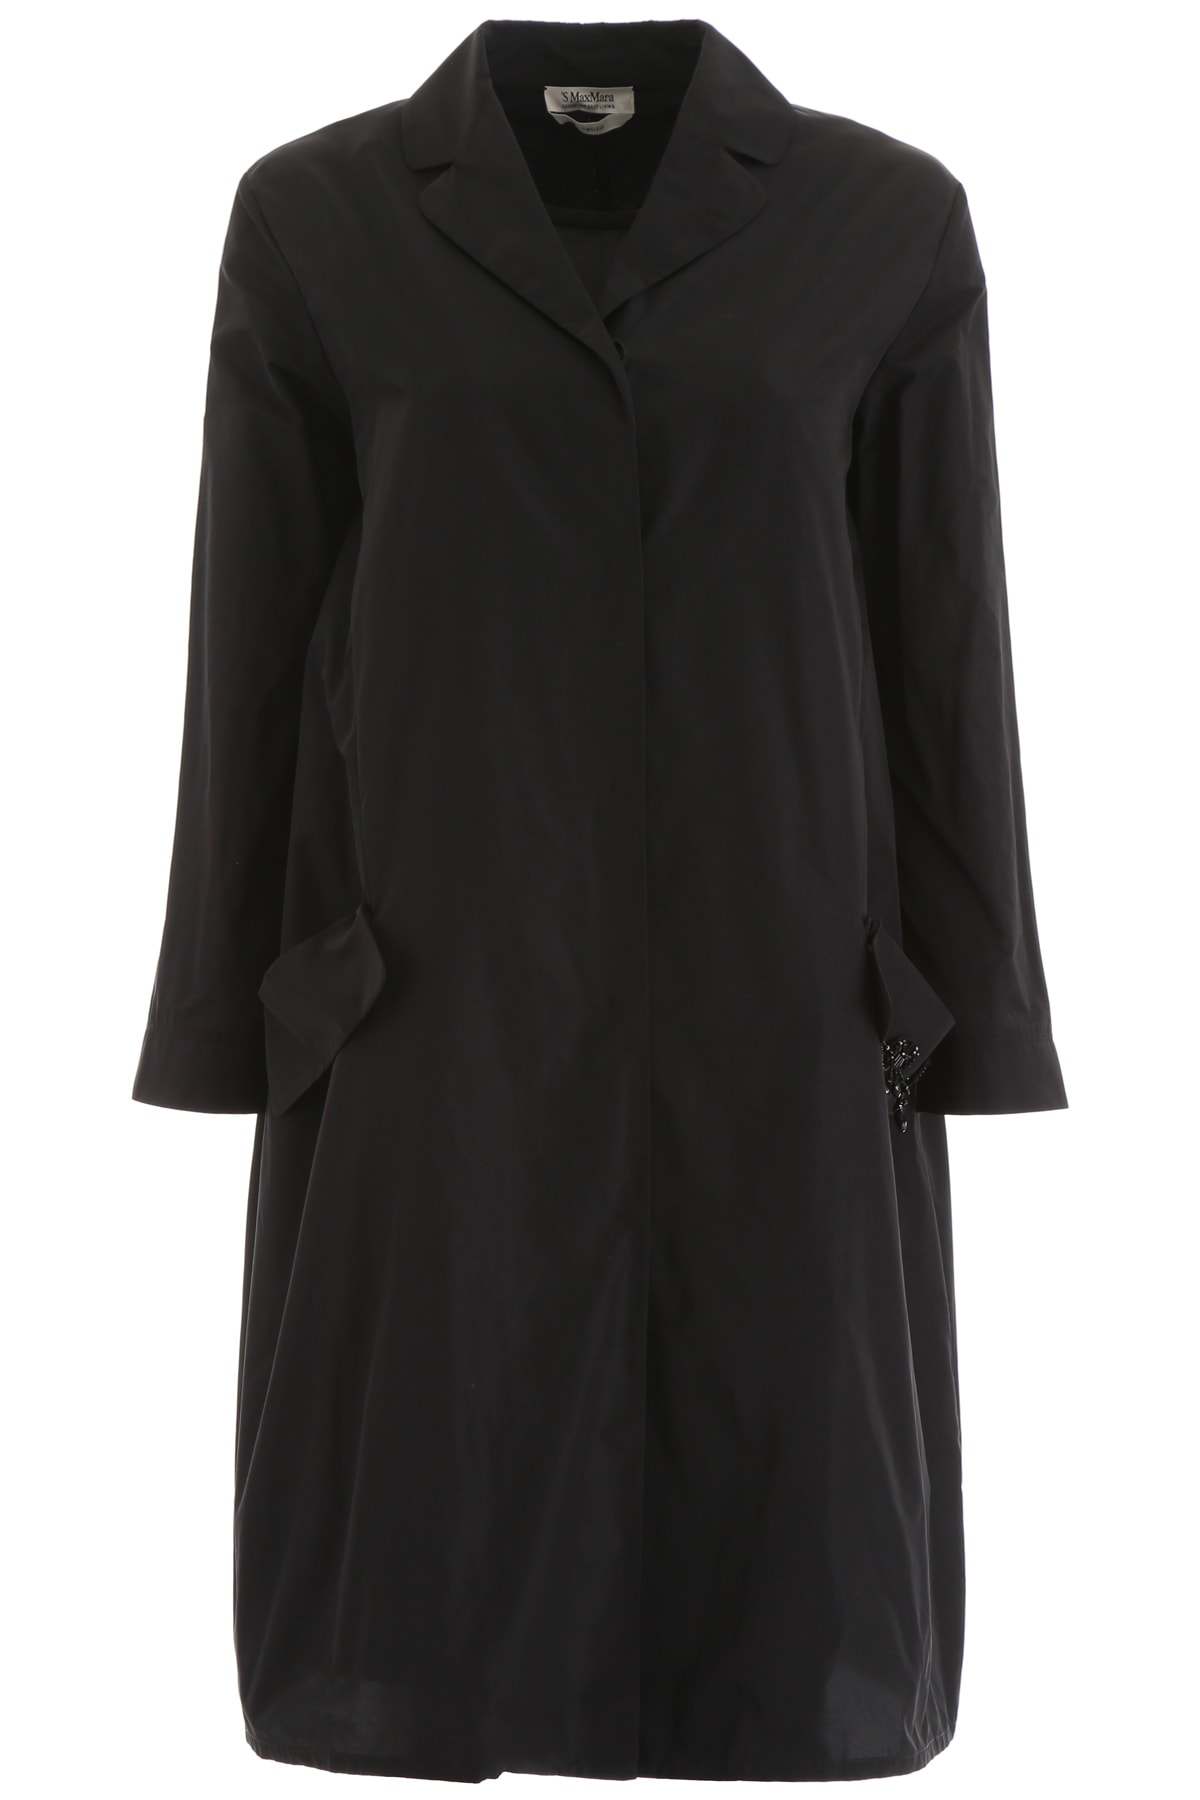 S Max Mara Here is The Cube Dress & coat Set